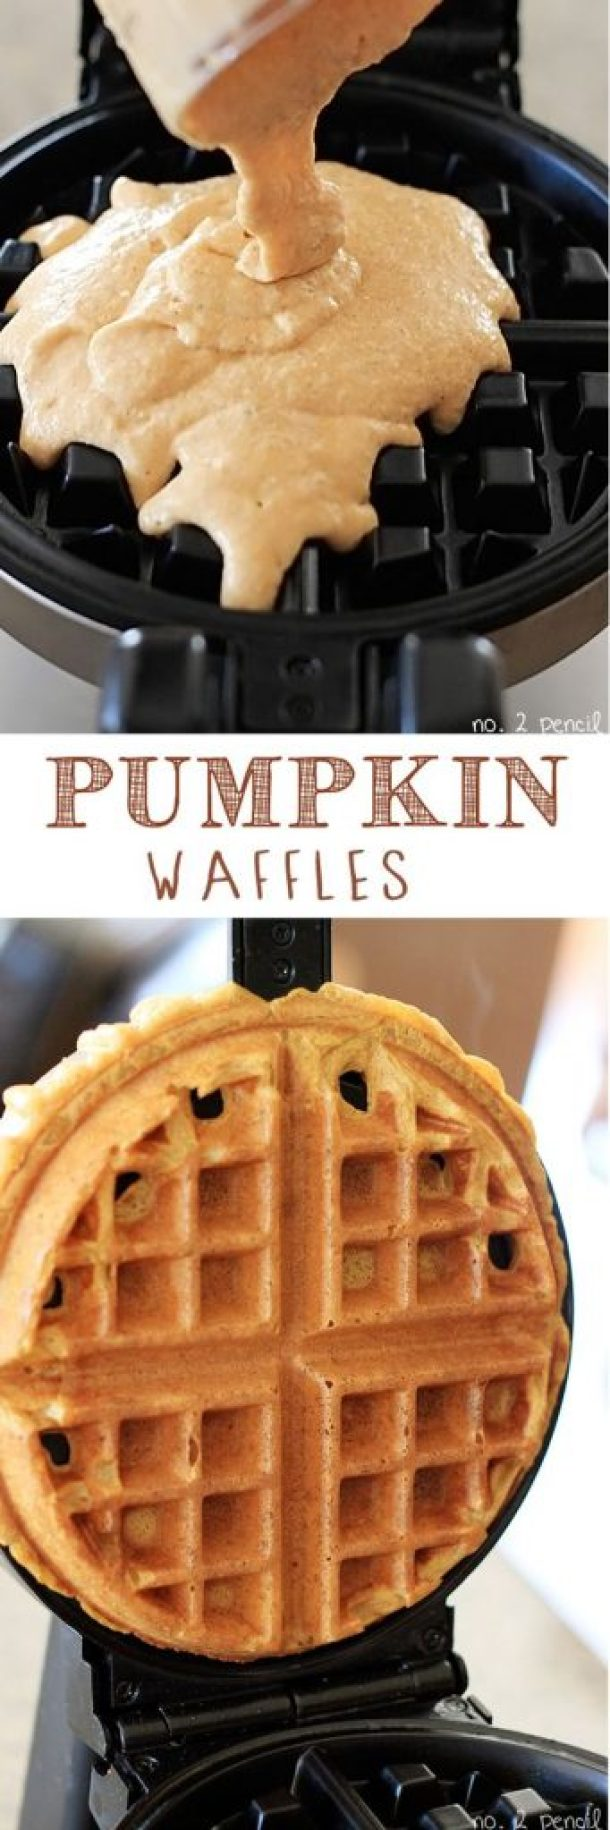 Pumpkin Waffles Recipe | No. 2 Pencil